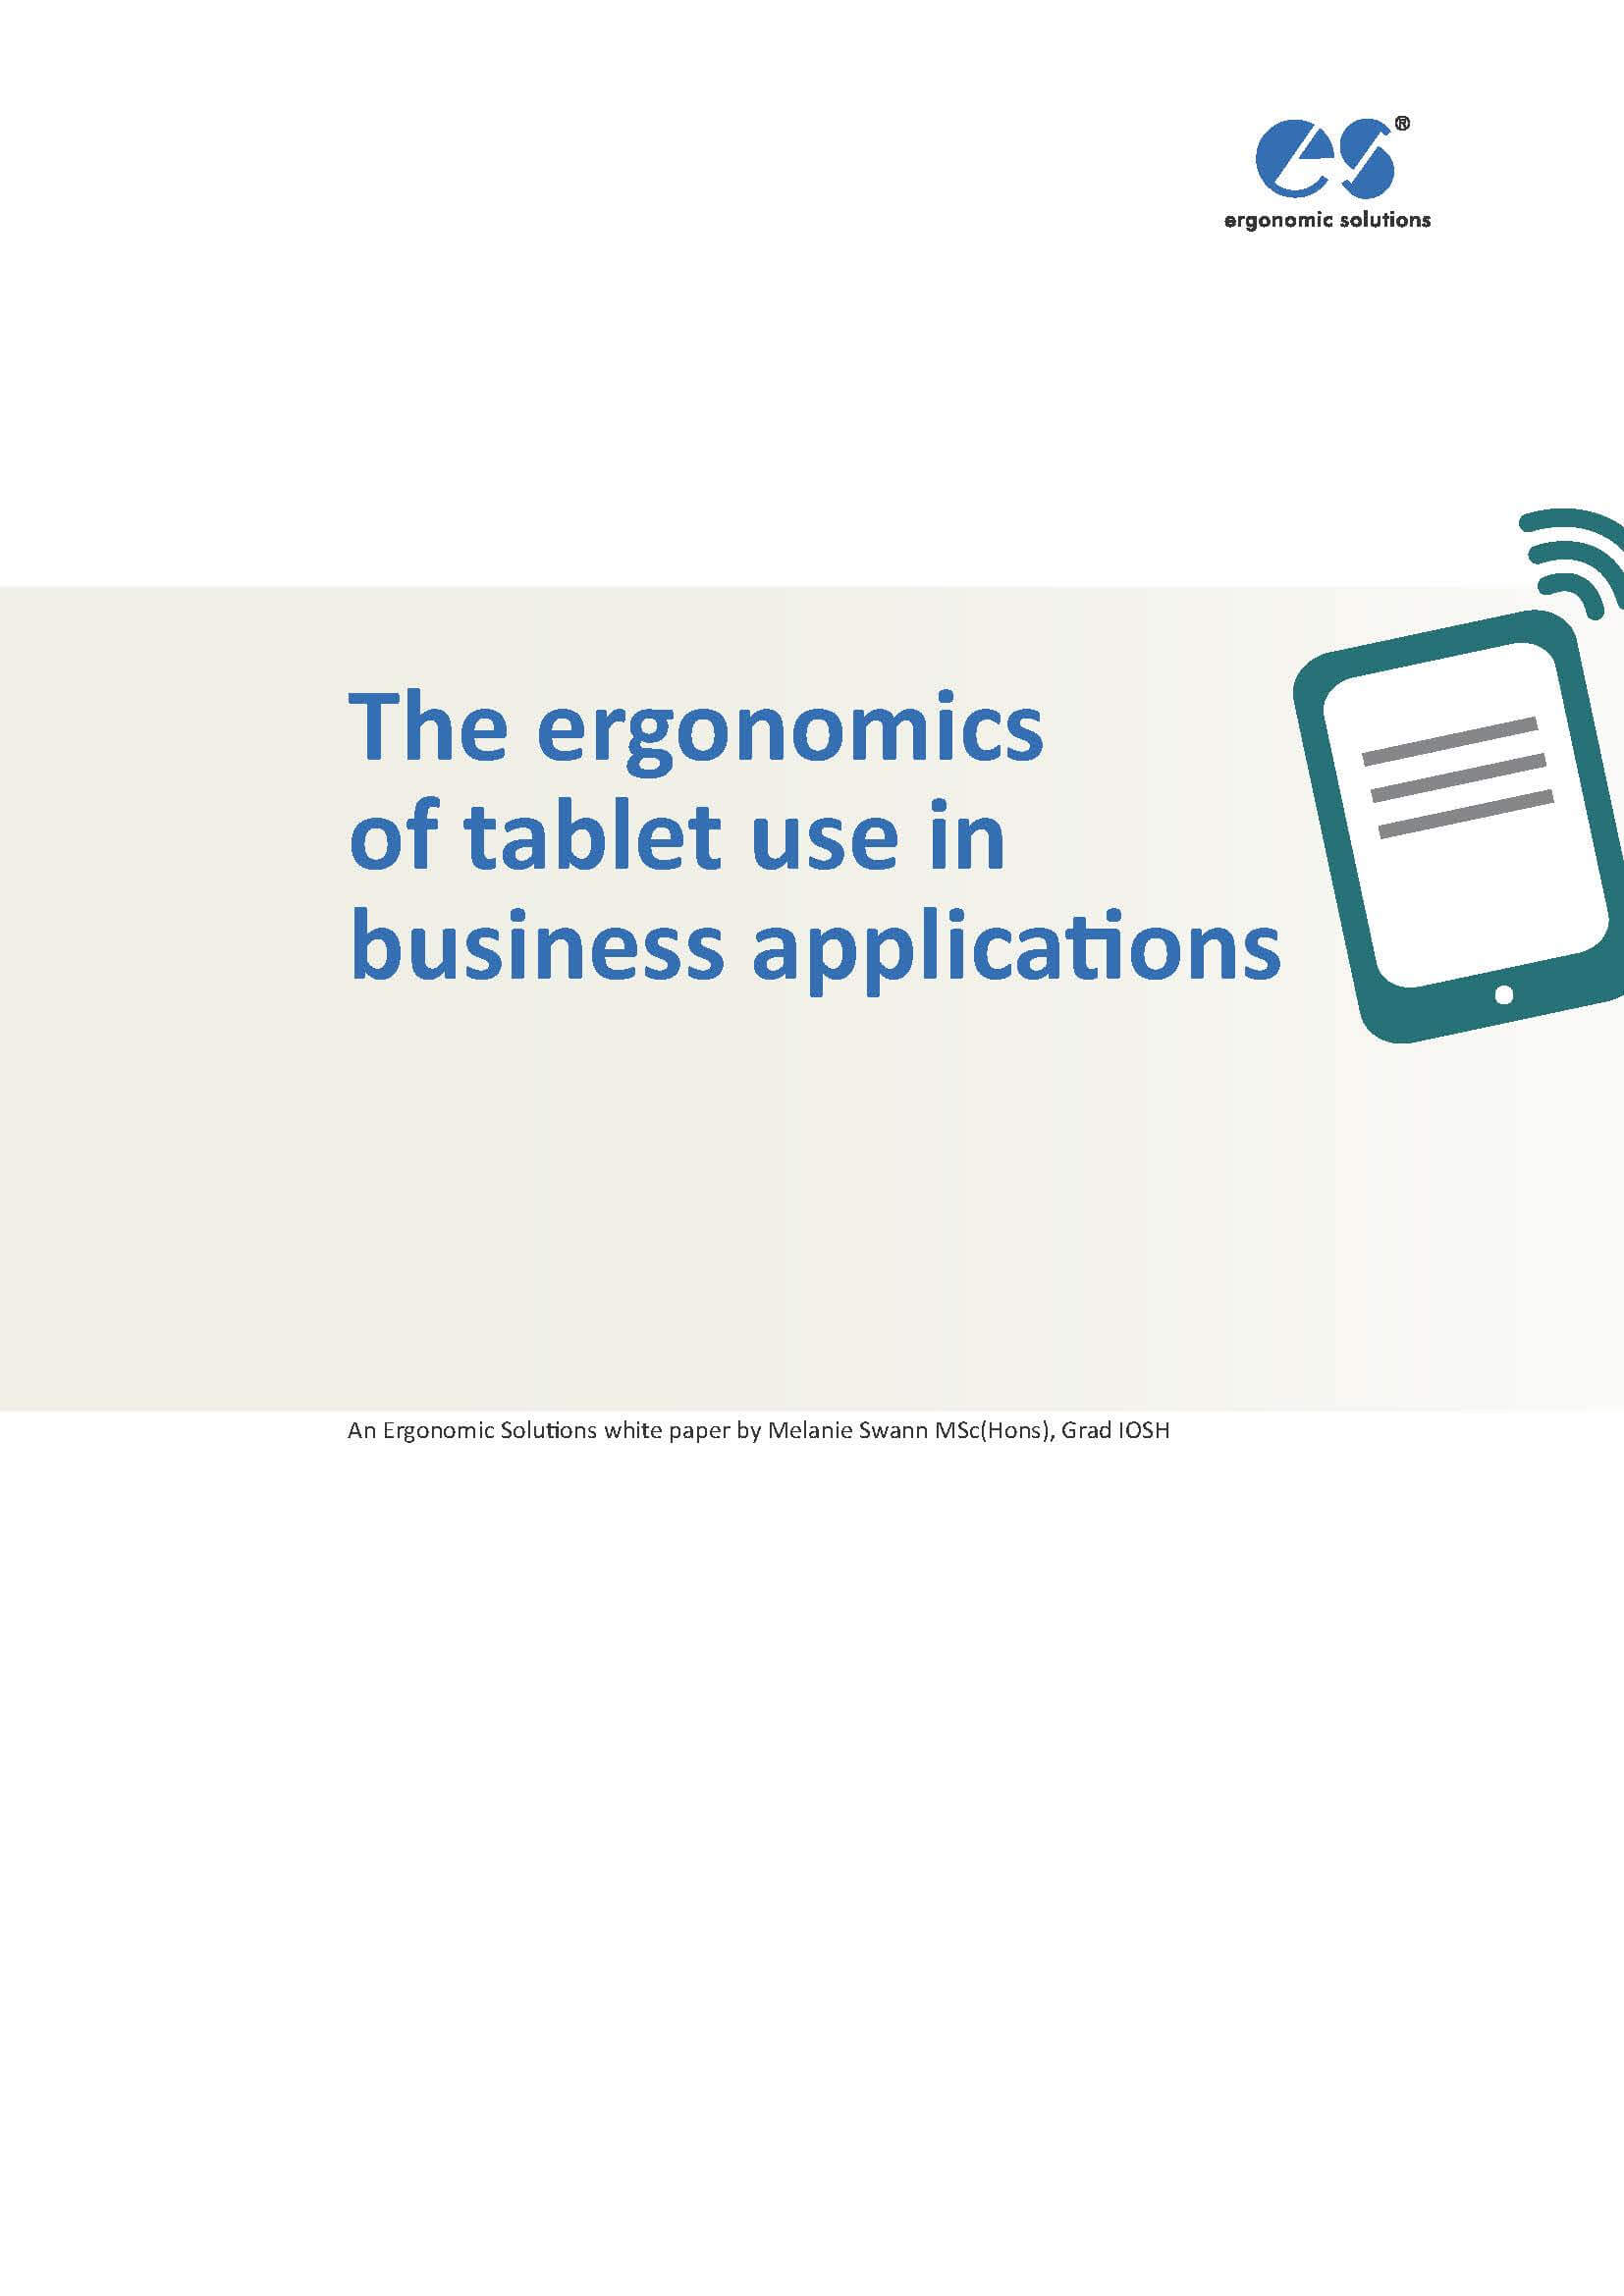 The ergonomics of tablet use in business applications